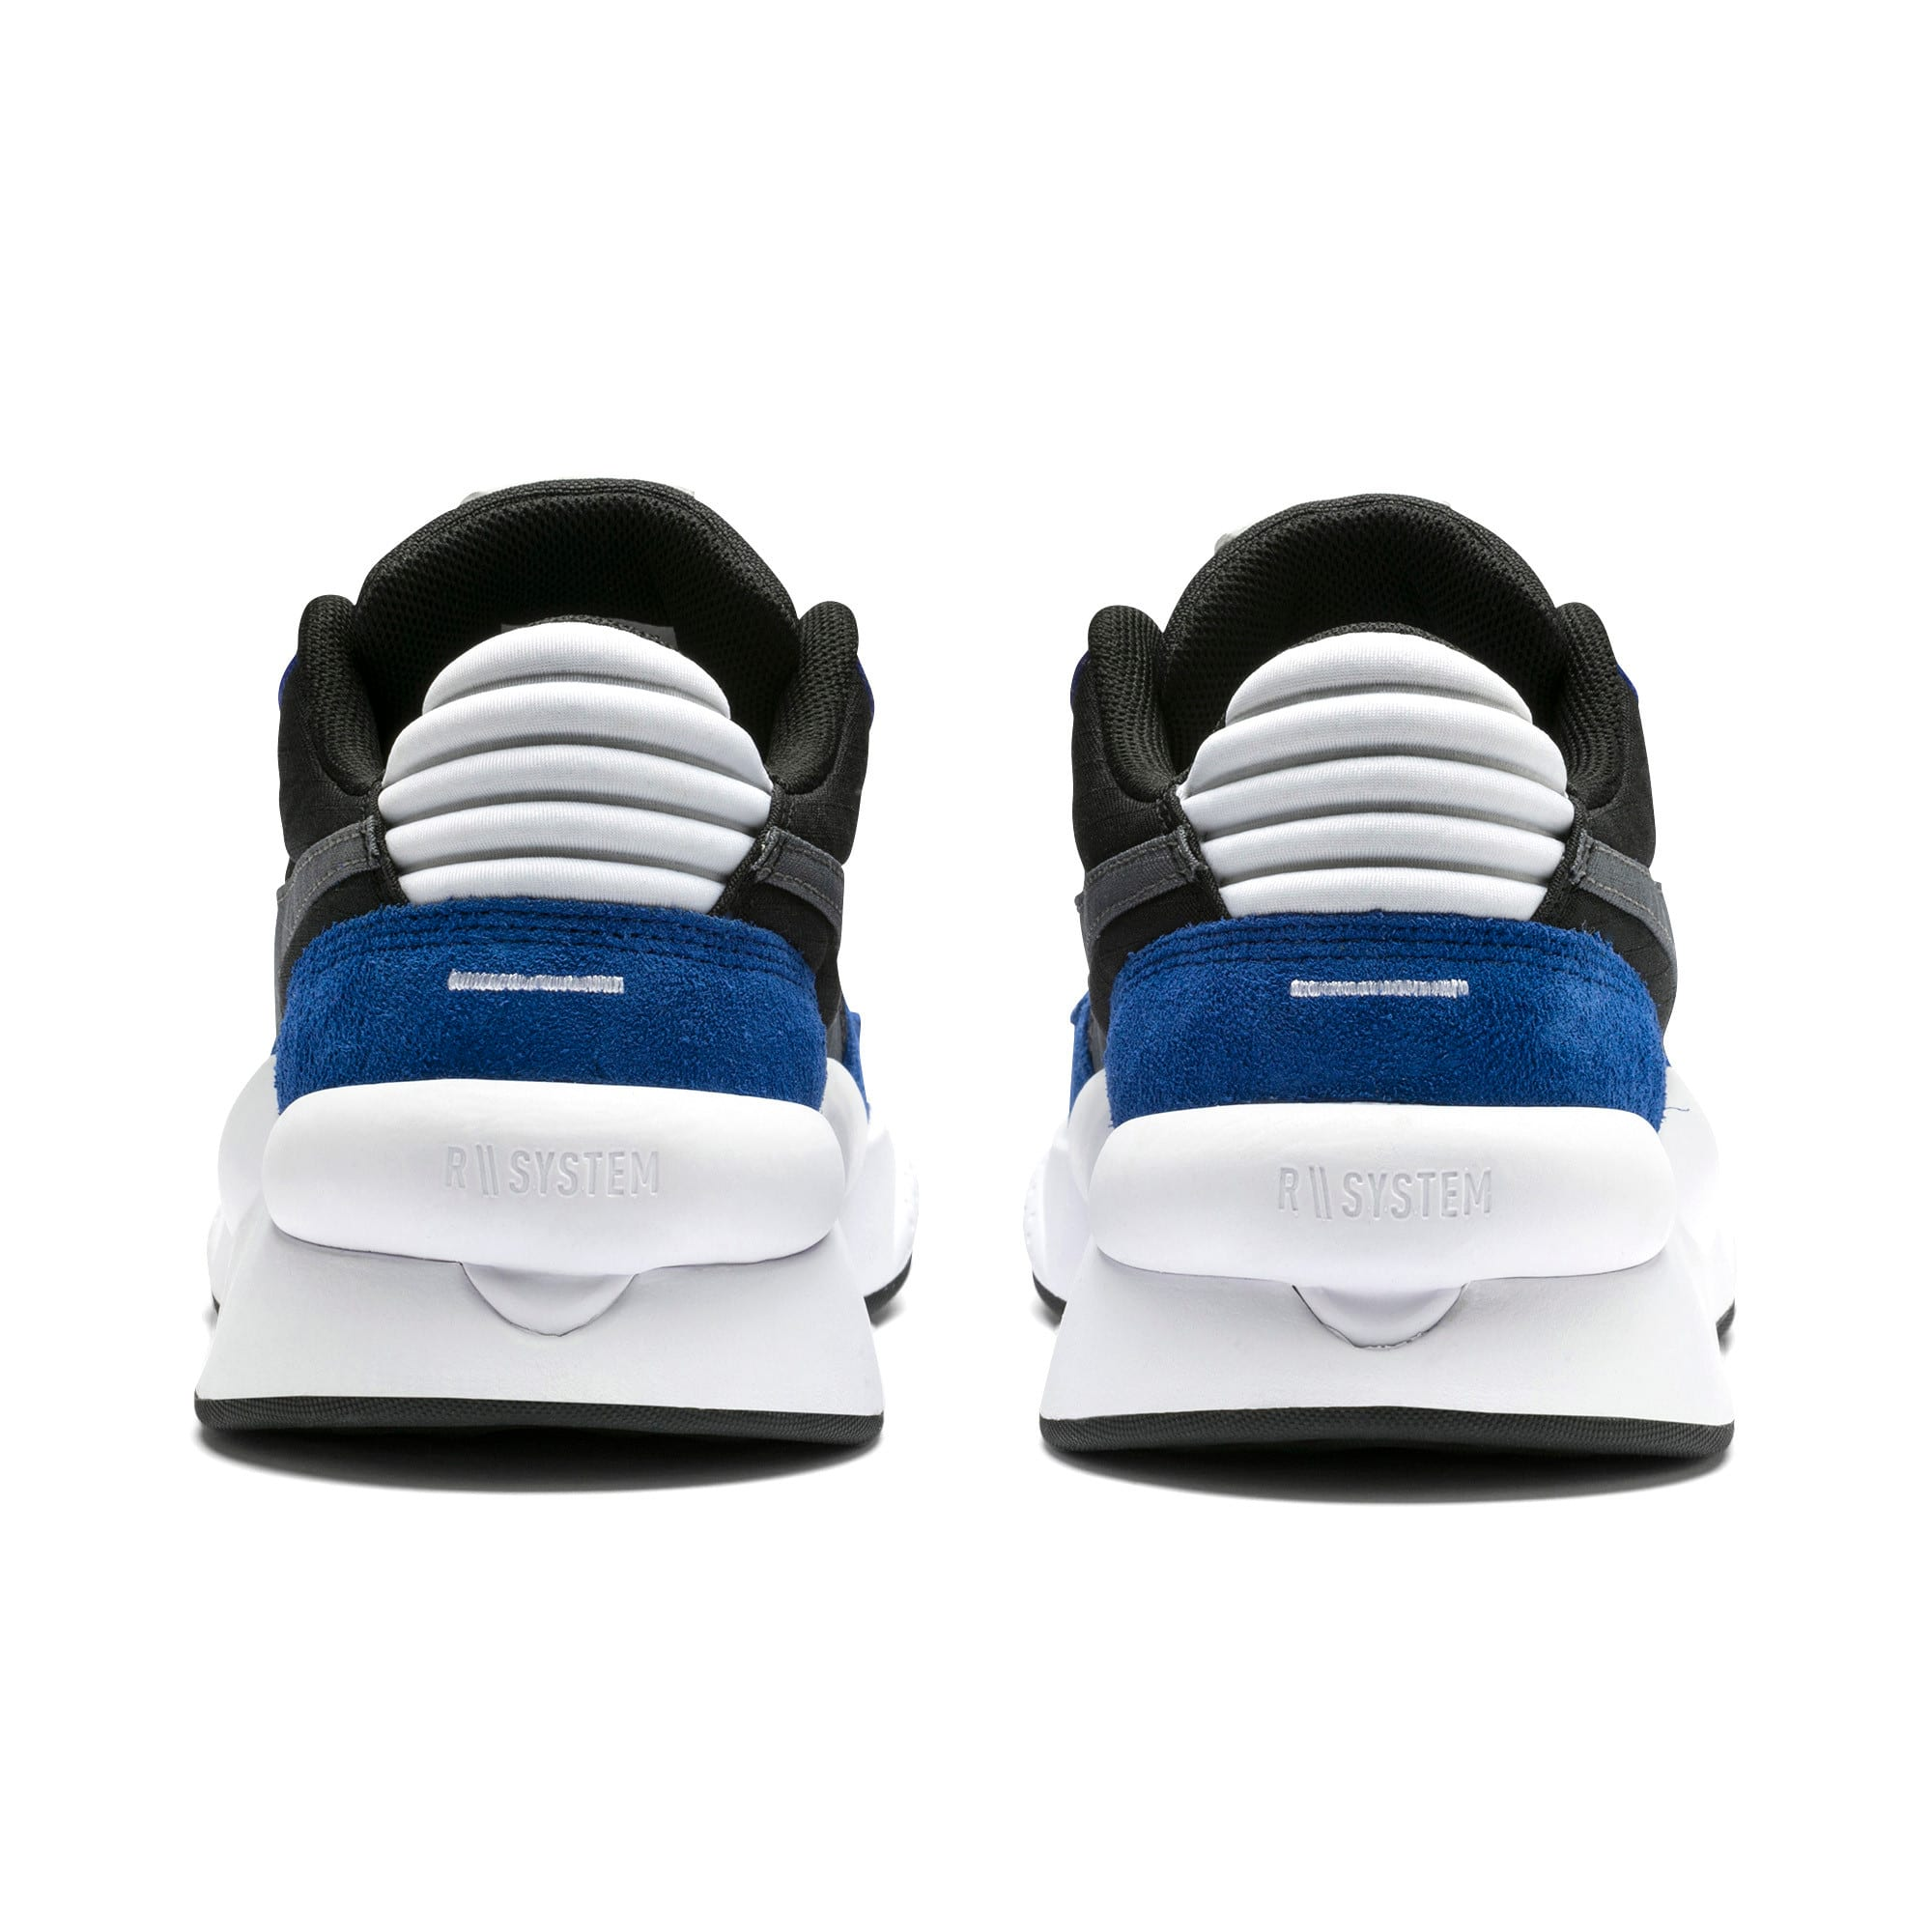 Thumbnail 3 of RS 9.8 Space Youth Sneaker, Puma Black-Galaxy Blue, medium